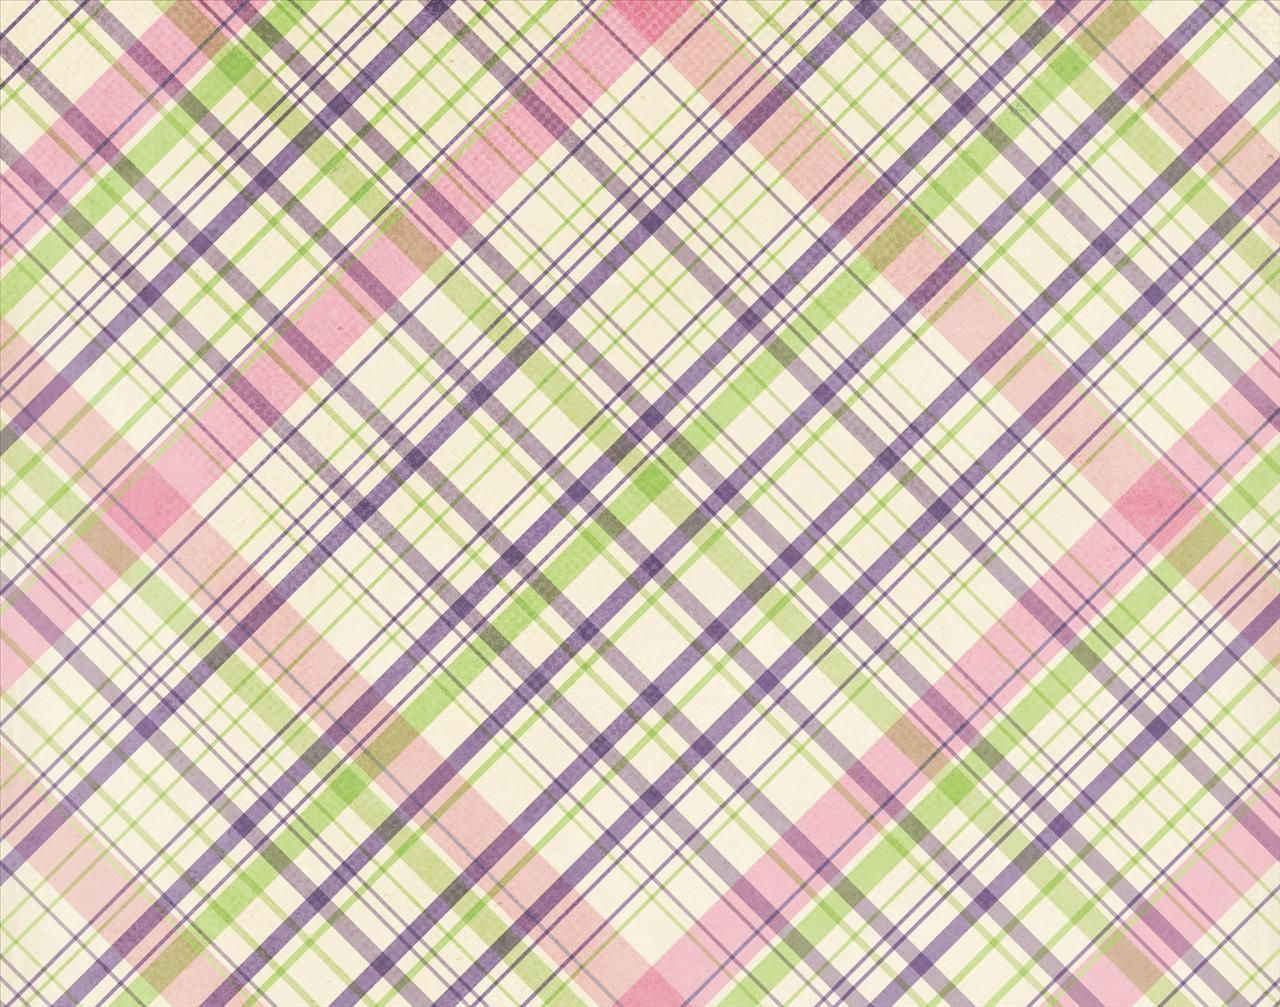 plaid background free - Bing Images | fondos | Pinterest ...